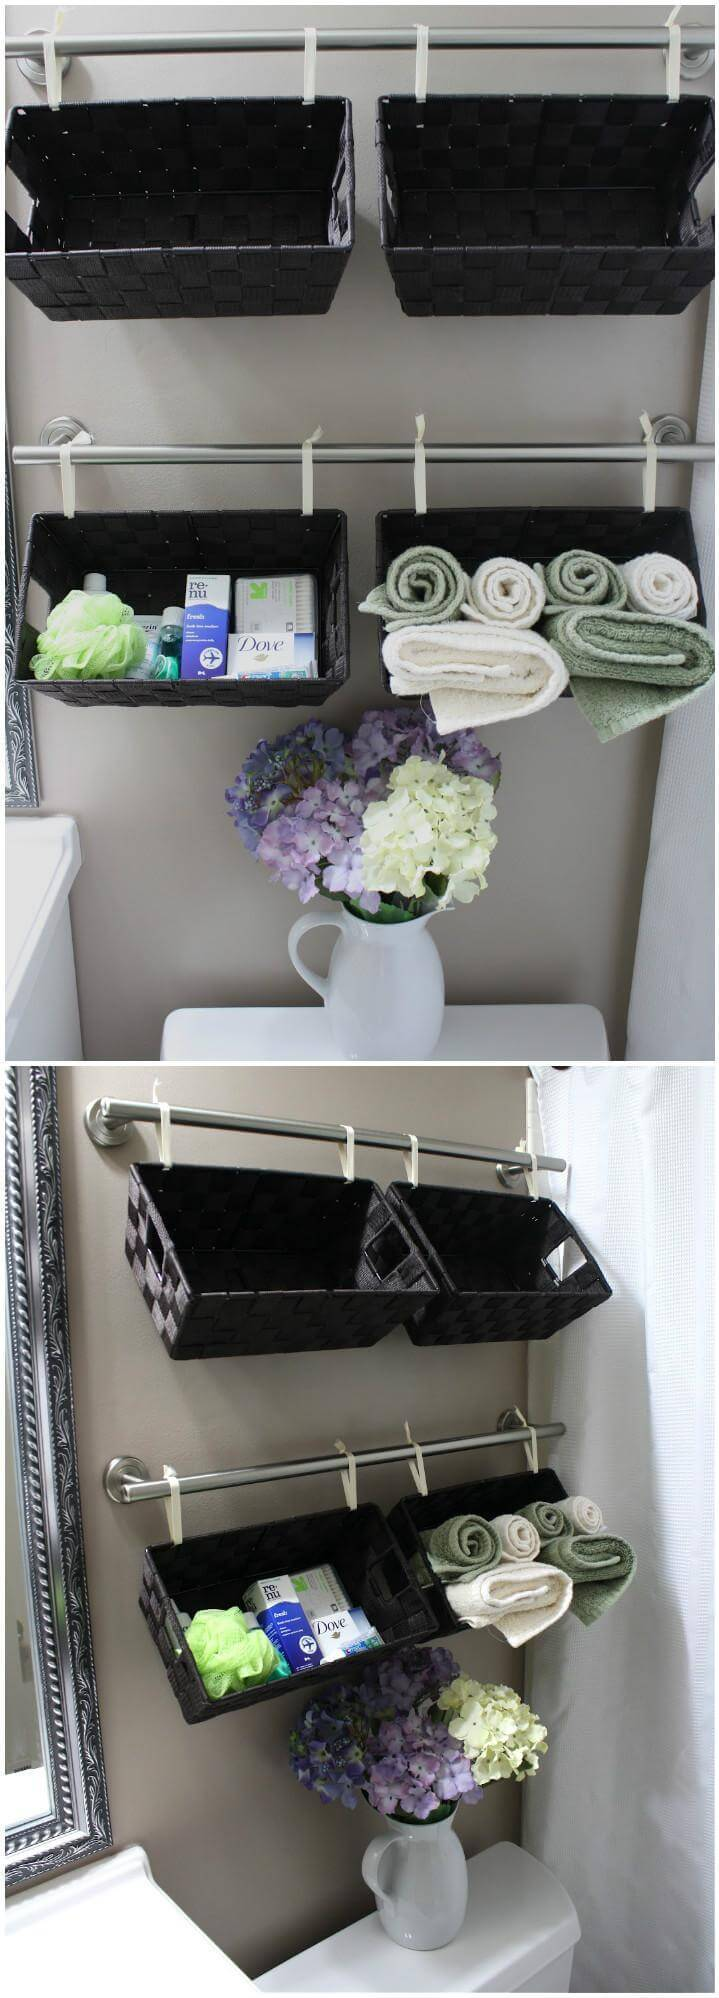 Self-installed bathroom wall hanging storage baskets